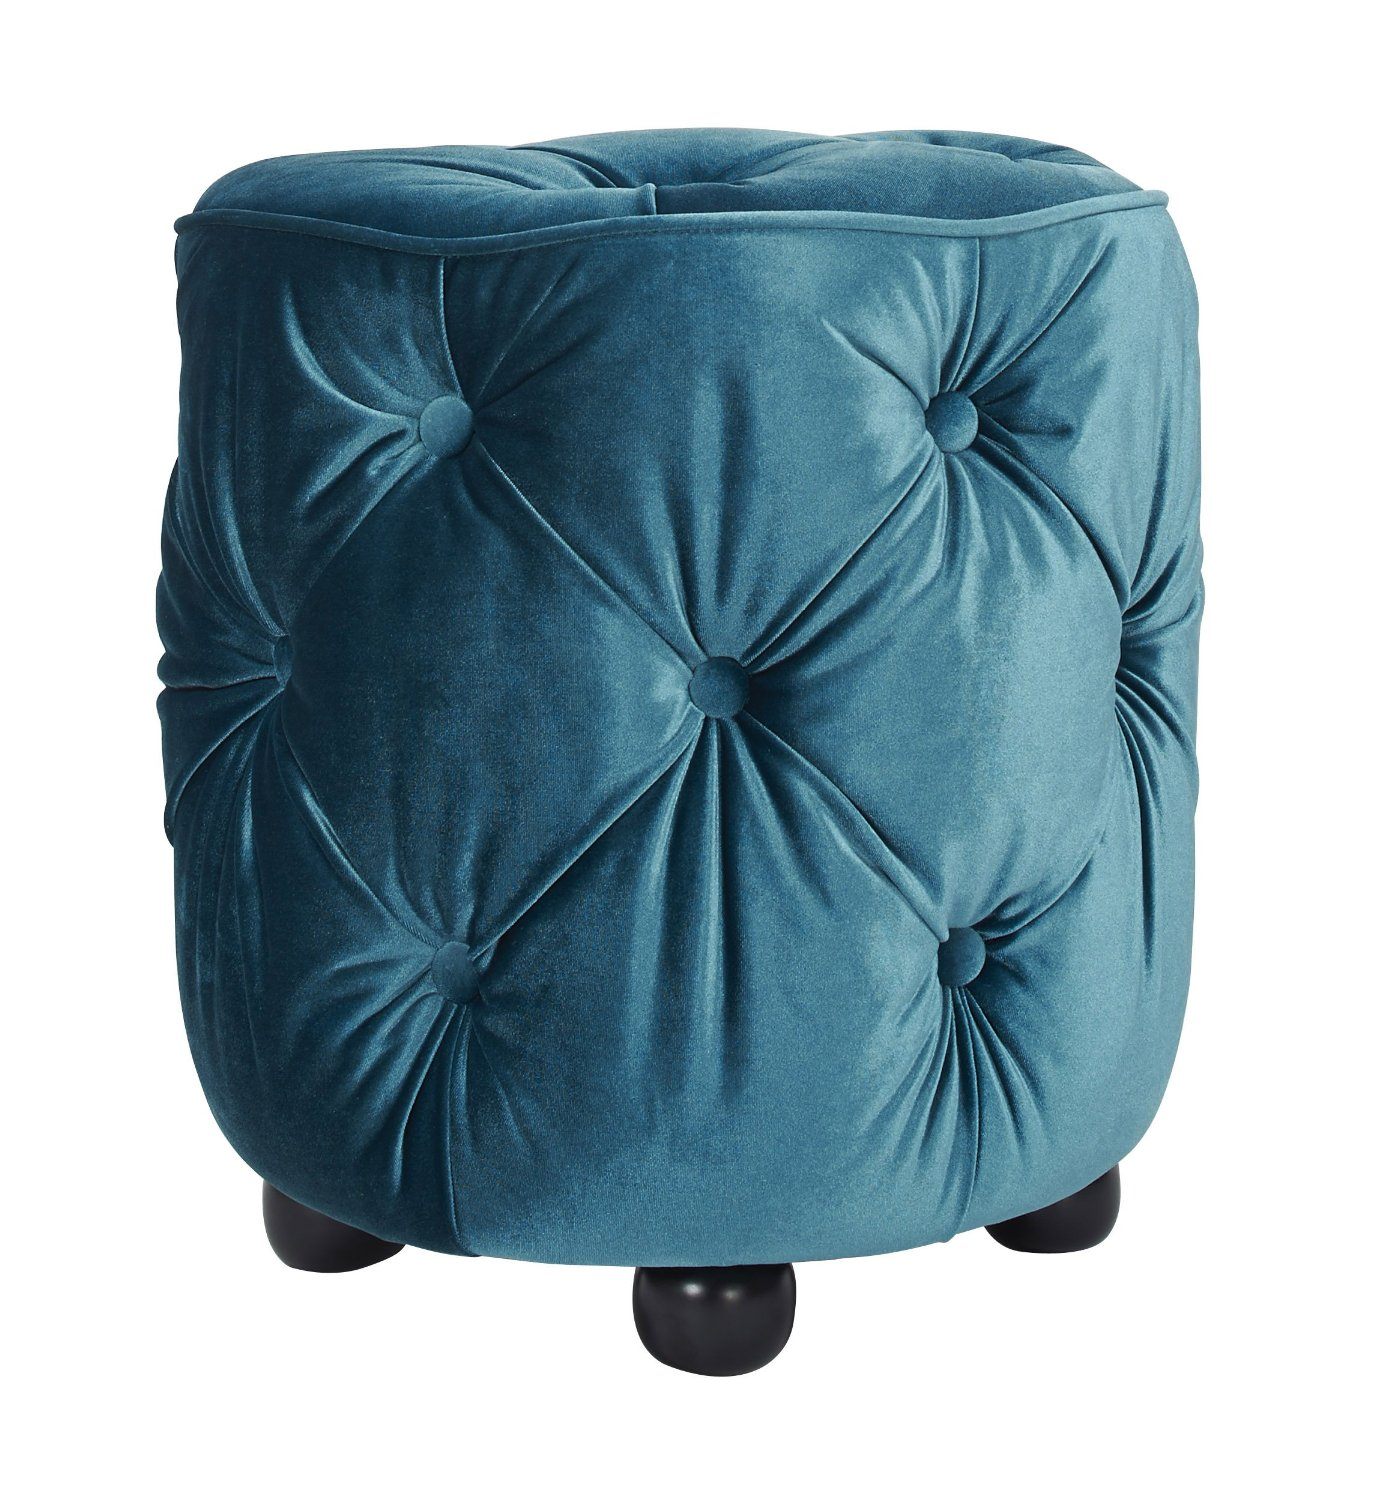 Brilliant Cheap Blue Tufted Ottoman Find Blue Tufted Ottoman Deals On Alphanode Cool Chair Designs And Ideas Alphanodeonline